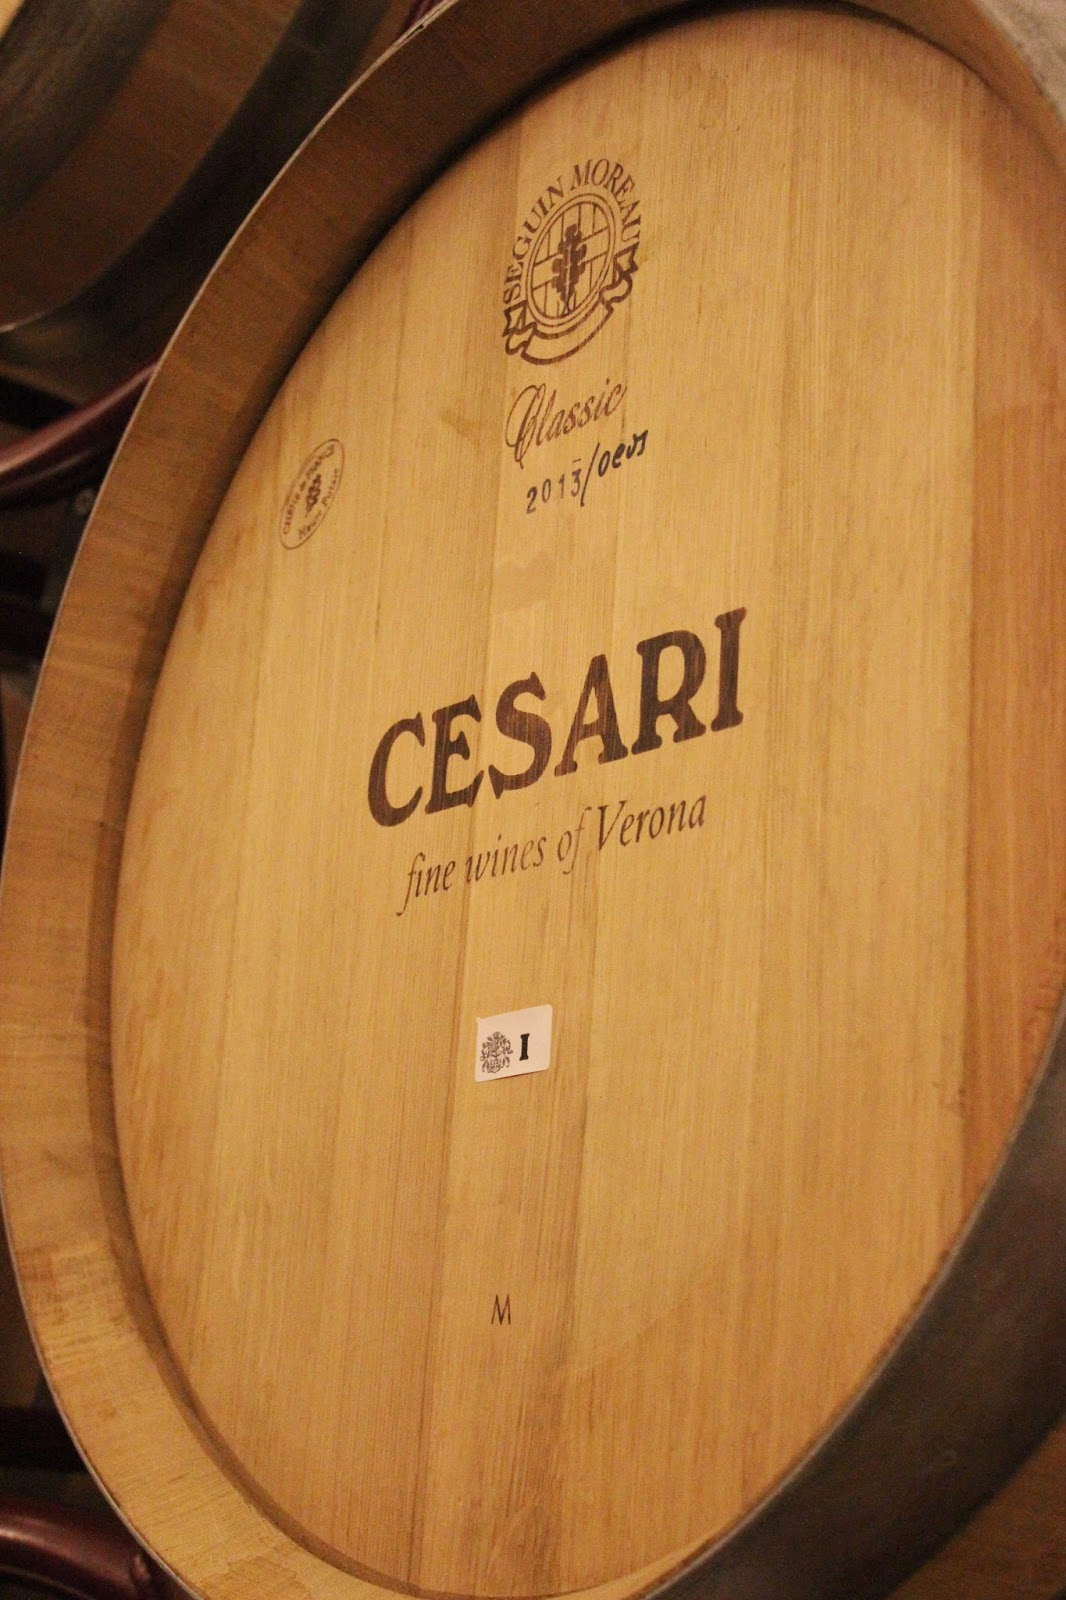 Cesari wines of the Valpolicella